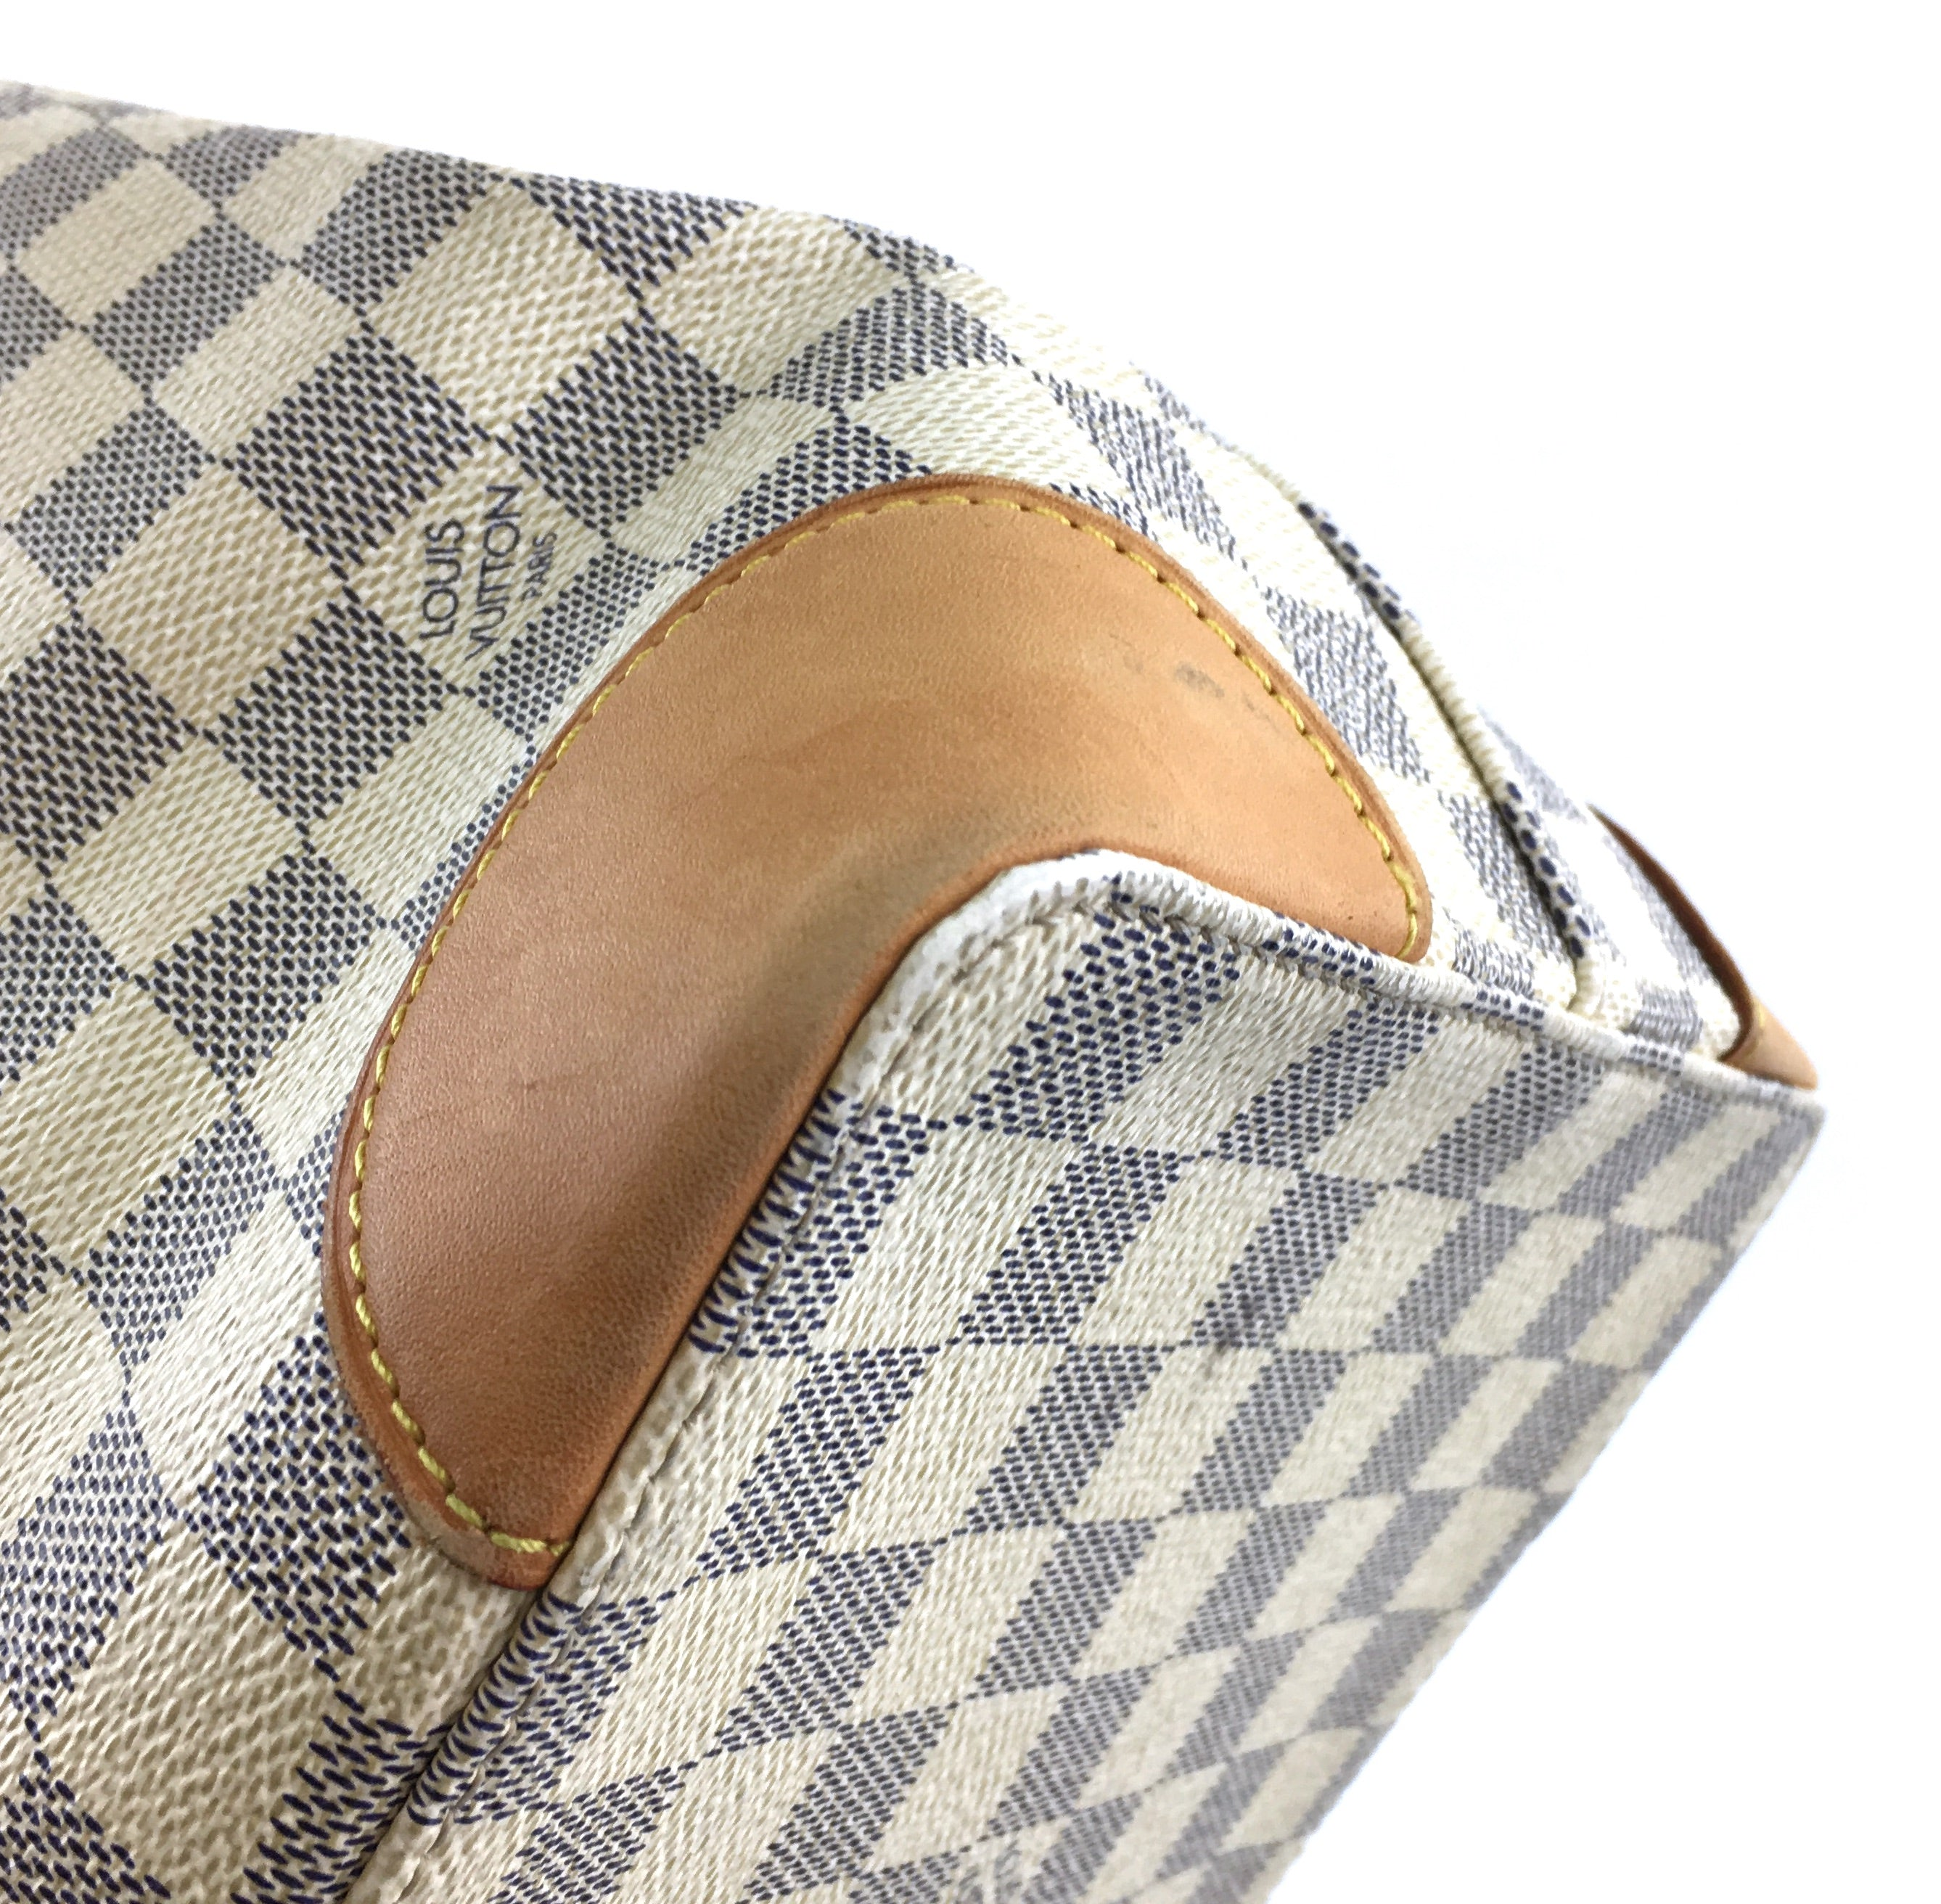 Louis Vuitton Hampstead MM Damier Azur Canvas